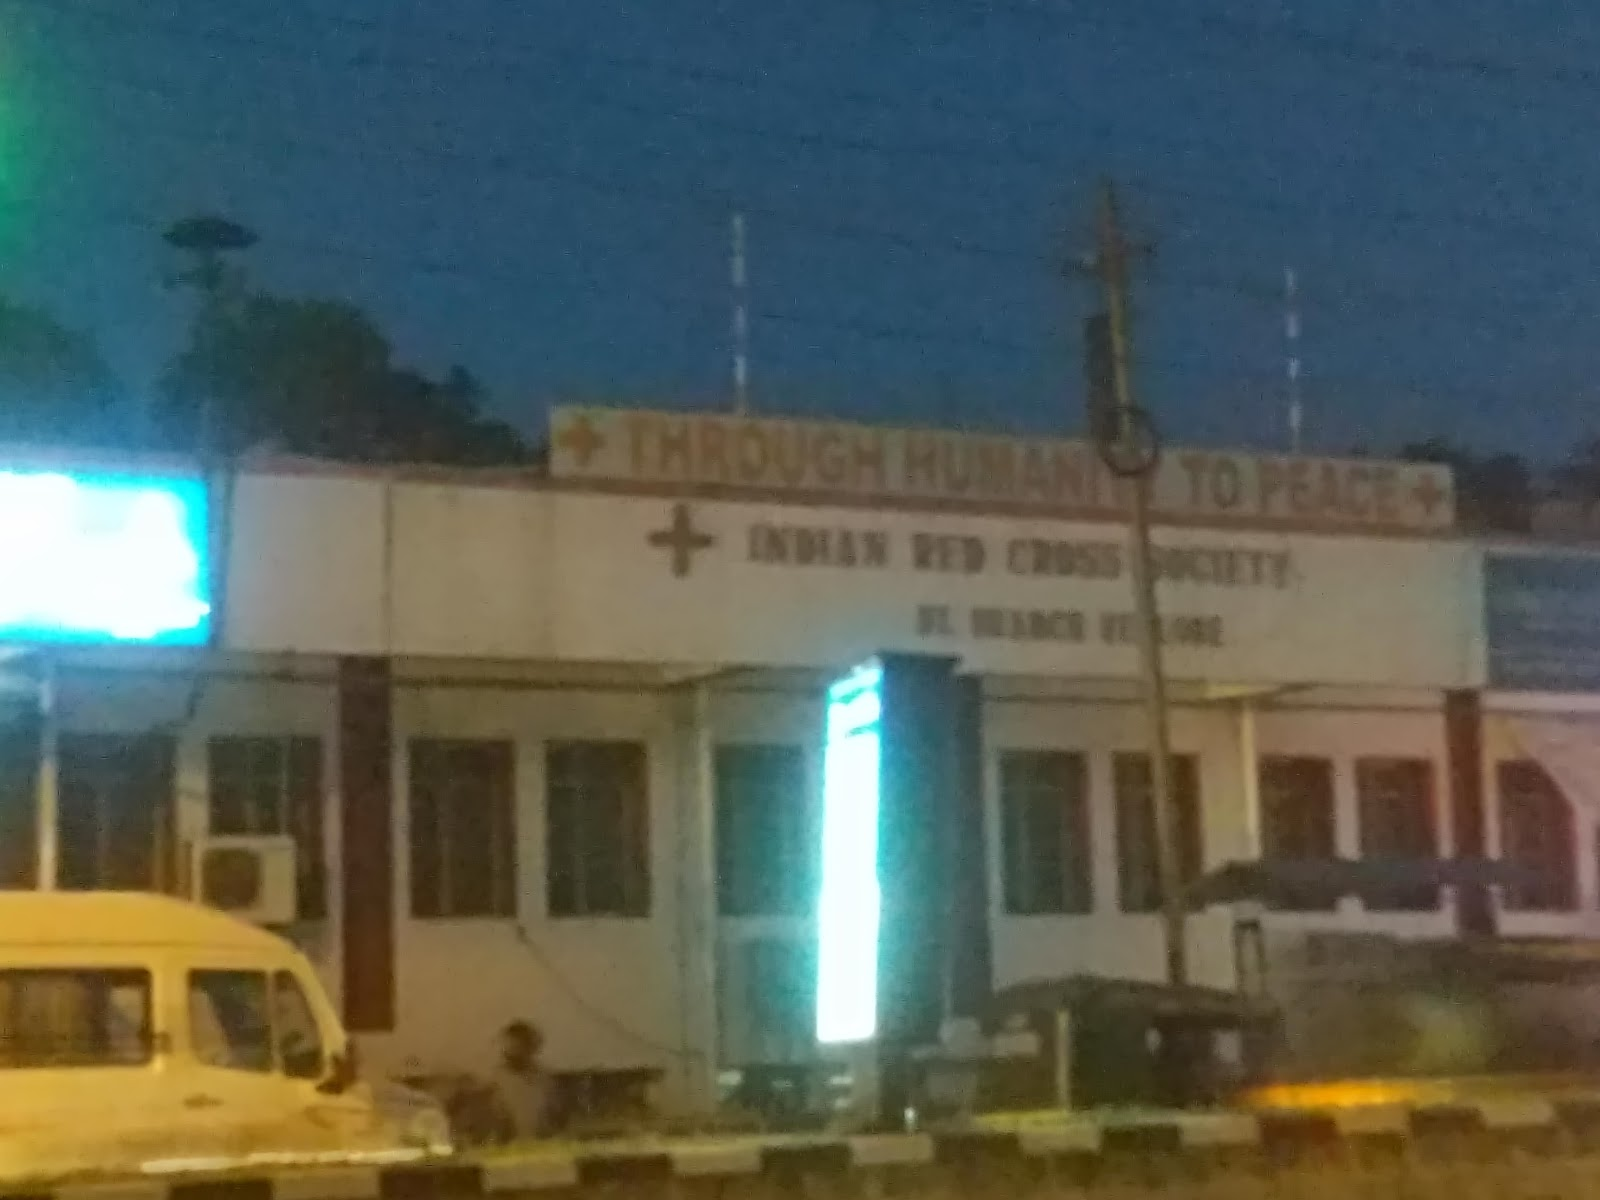 blood bank Indian Red Cross Society near Vellore Tamil Nadu